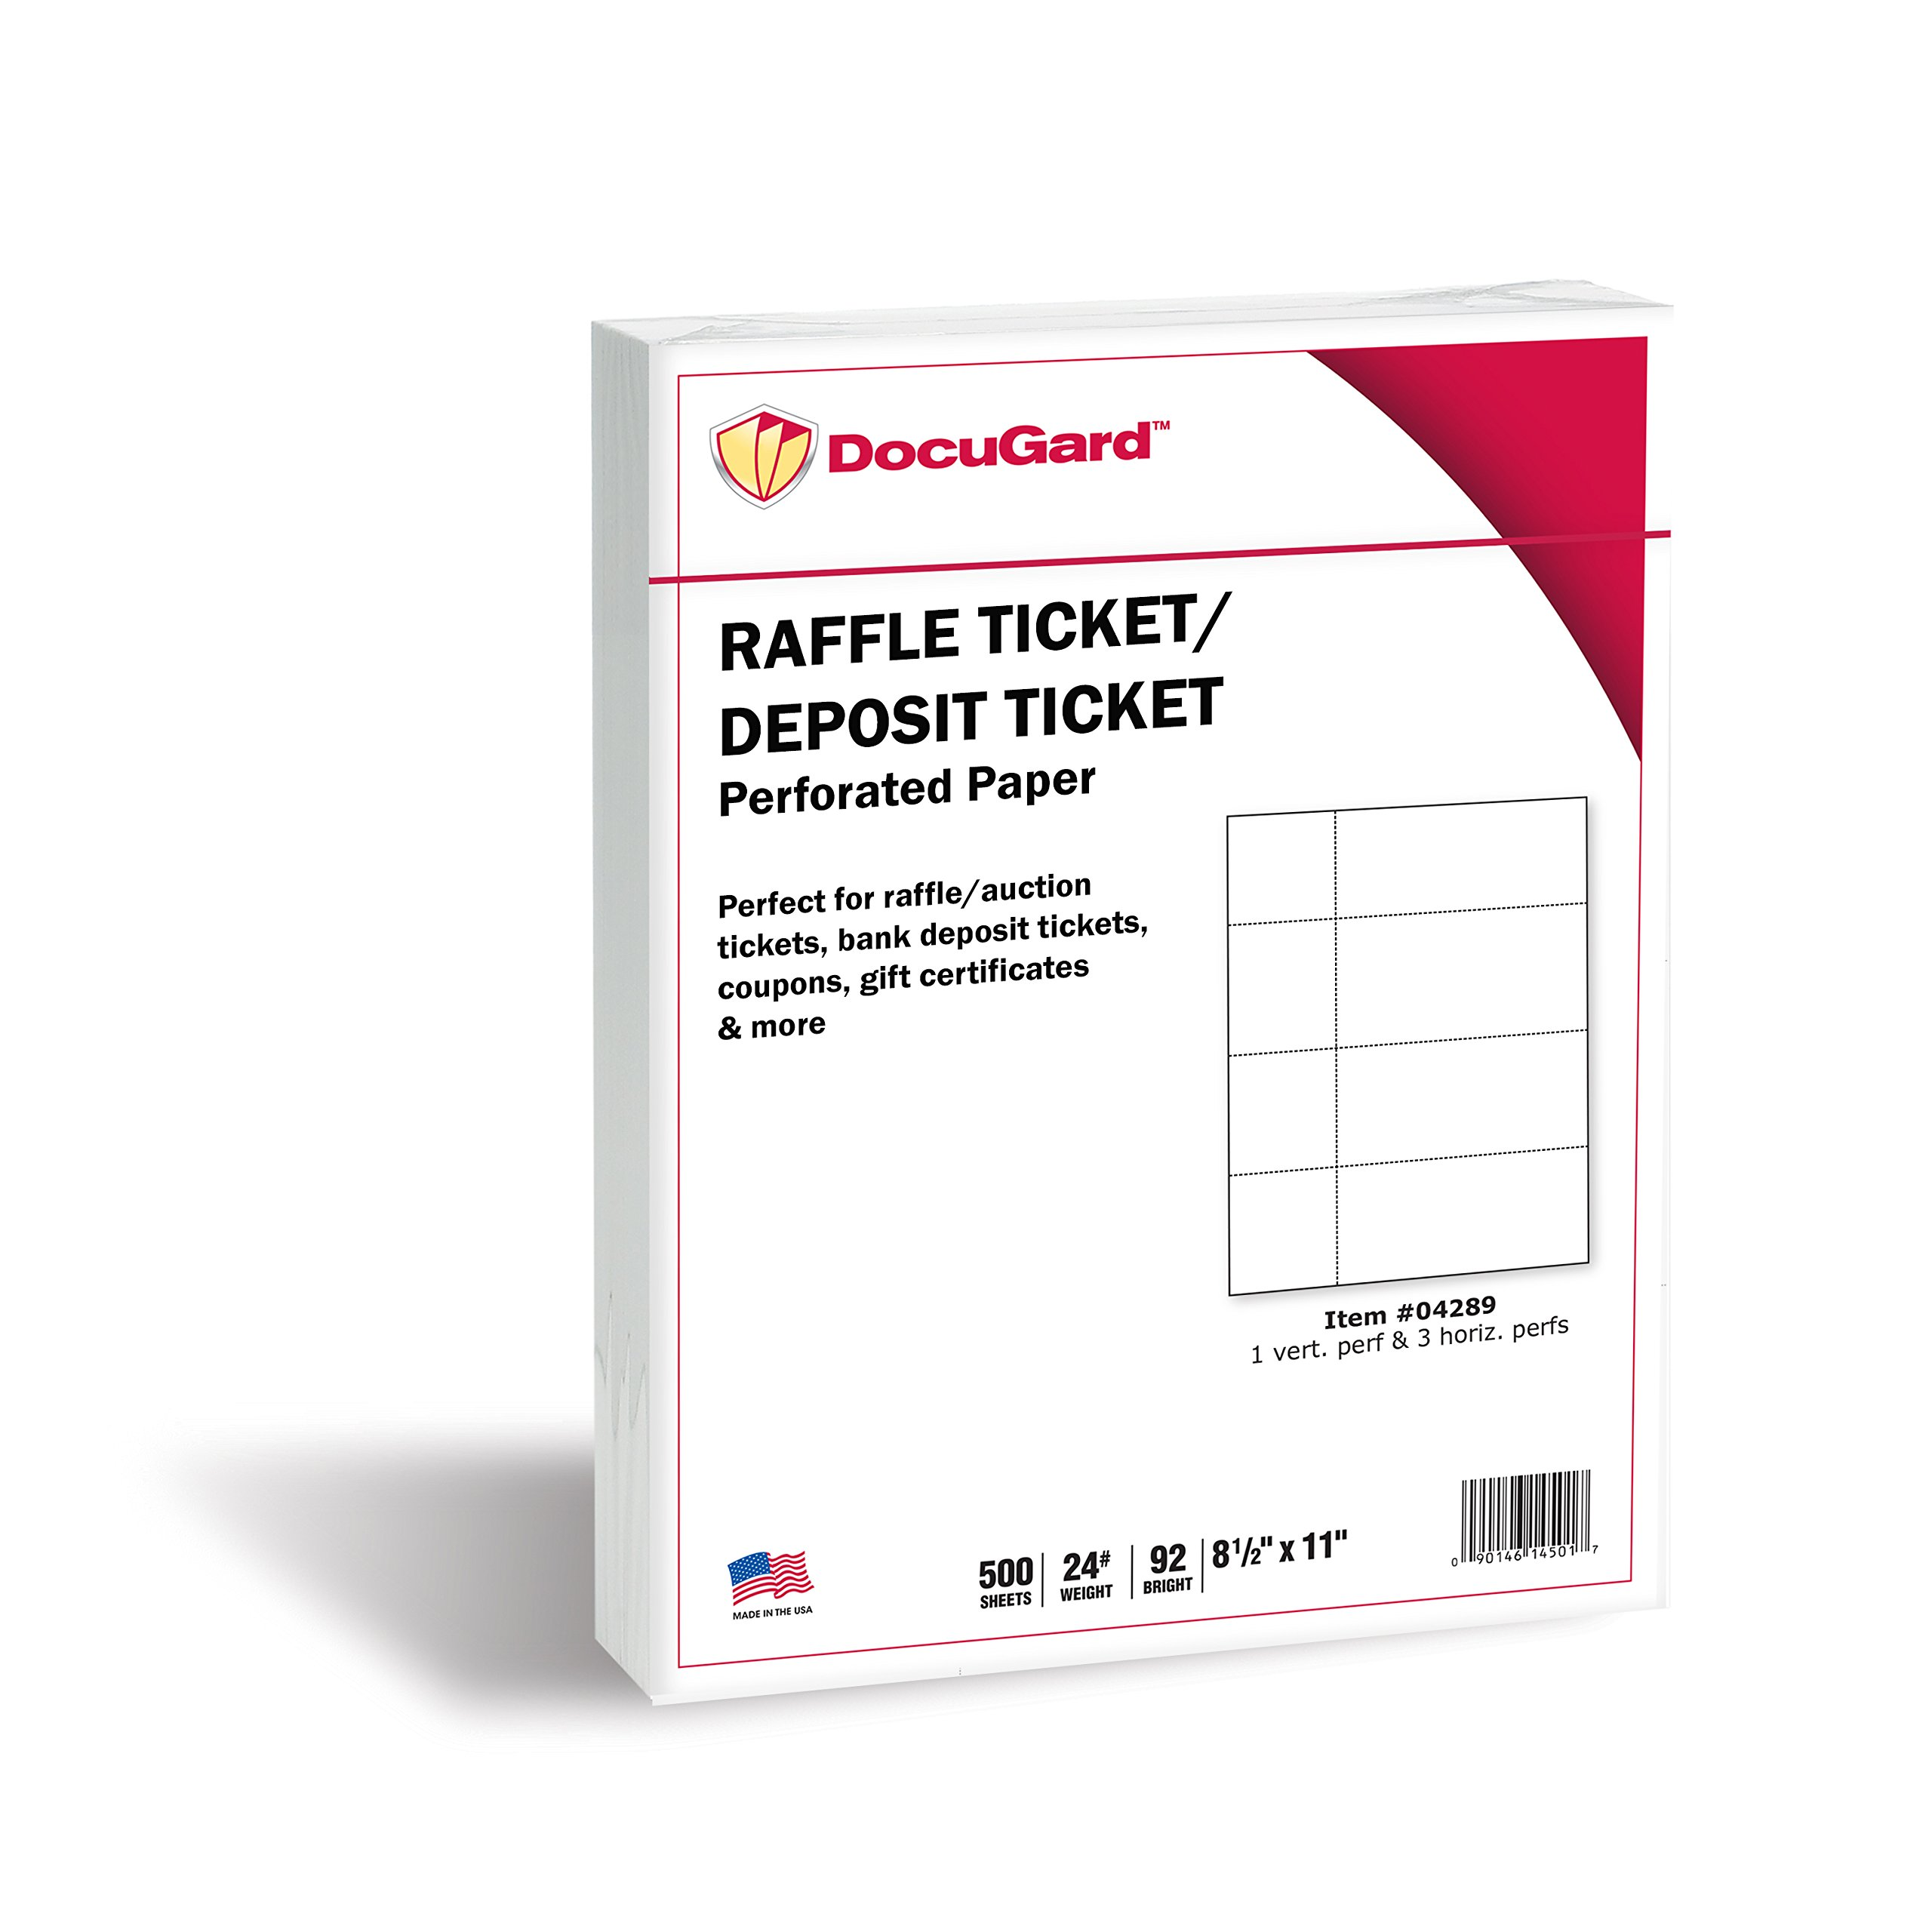 DocuGard Perforated Paper for Deposit Tickets, Raffle Tickets, and More, Tear-Away Stubs, 8.5 x 11, 24 lb, 4 Perfs, 500 Sheets, White (04289-1)